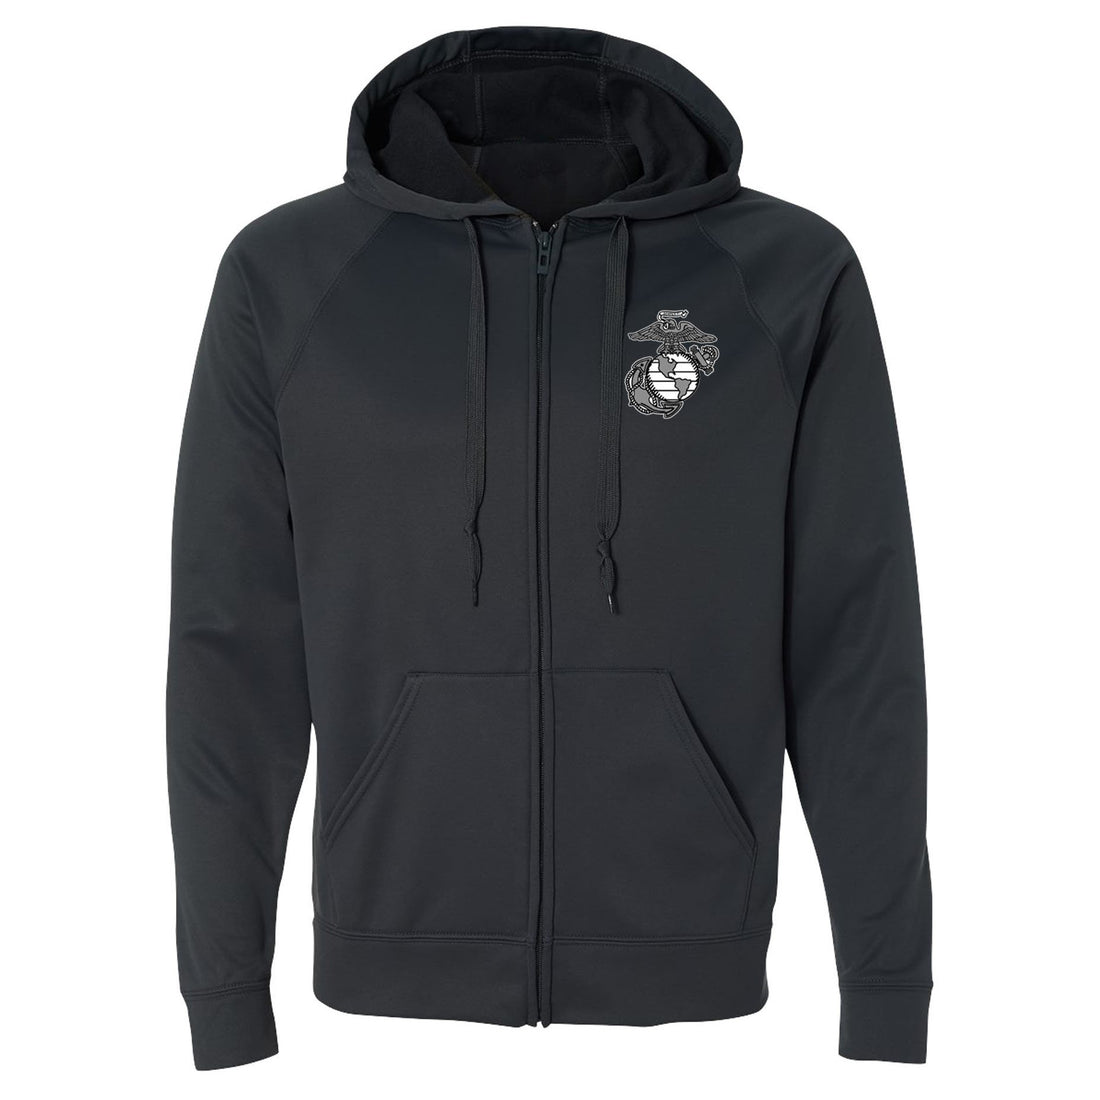 Front view of the grey zip-up USMC hoodie with the eagle, globe, and anchor in the top corner from Marine Corps Direct.